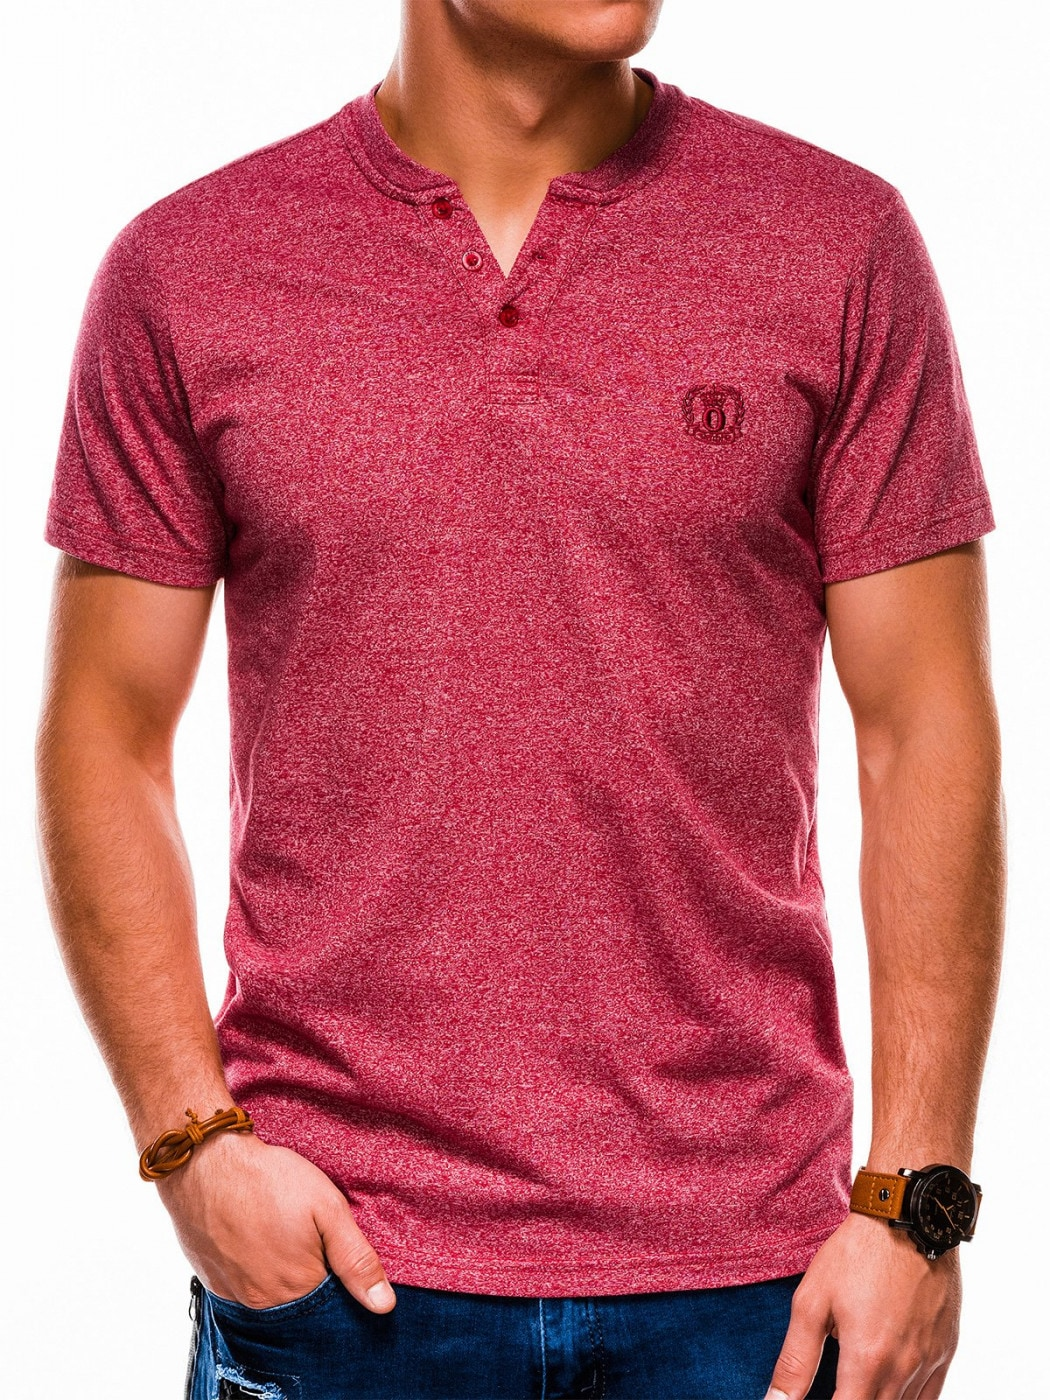 Ombre Clothing Men's plain t-shirt S1047